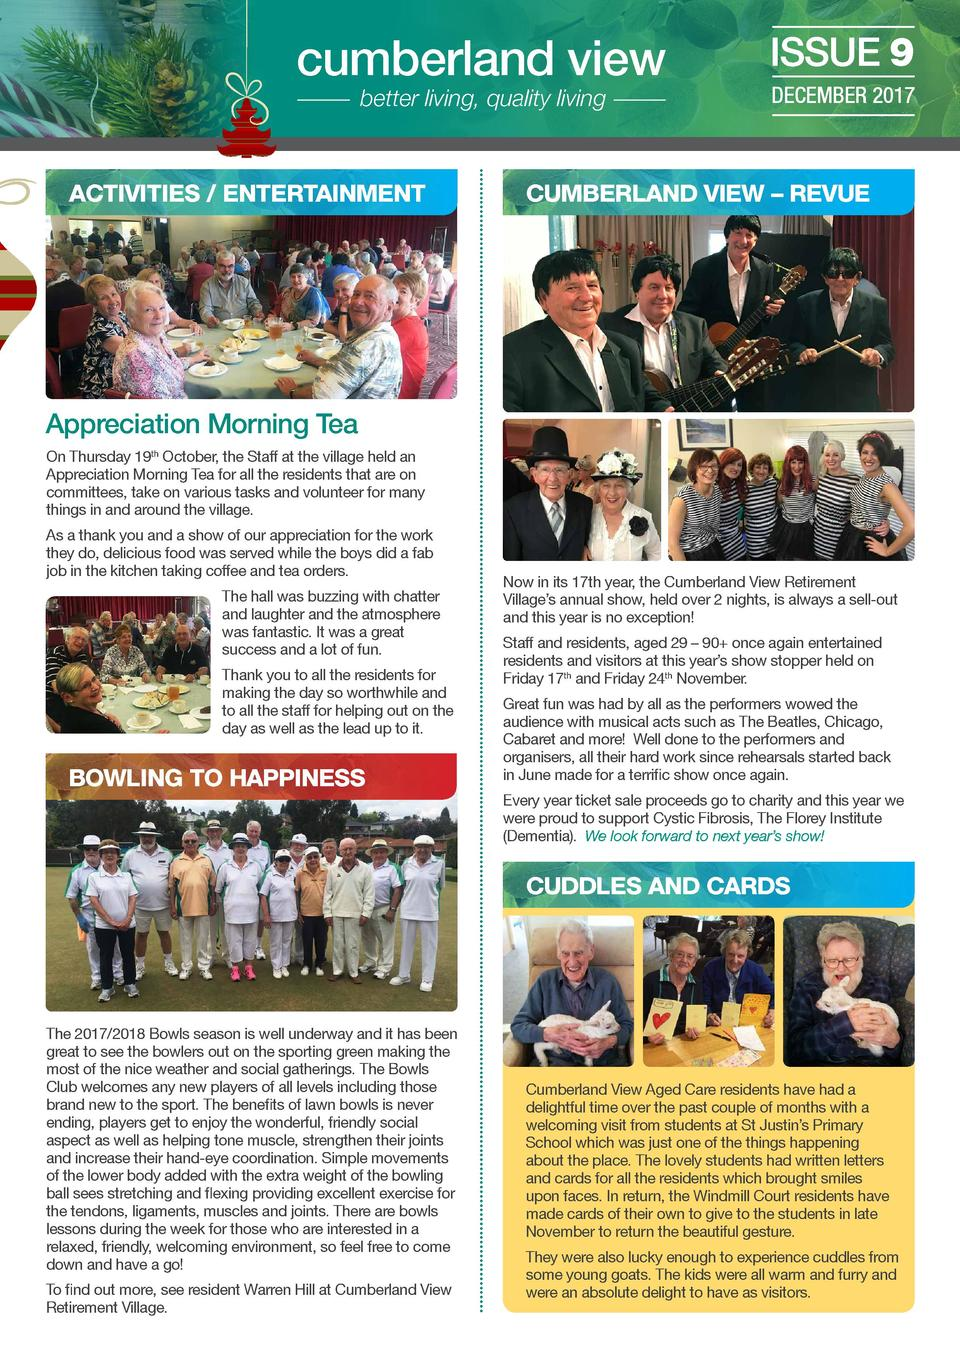 cumberland view better living, quality living  ACTIVITIES   ENTERTAINMENT  ISSUE 9 DECEMBER 2017  CUMBERLAND VIEW     REVU...